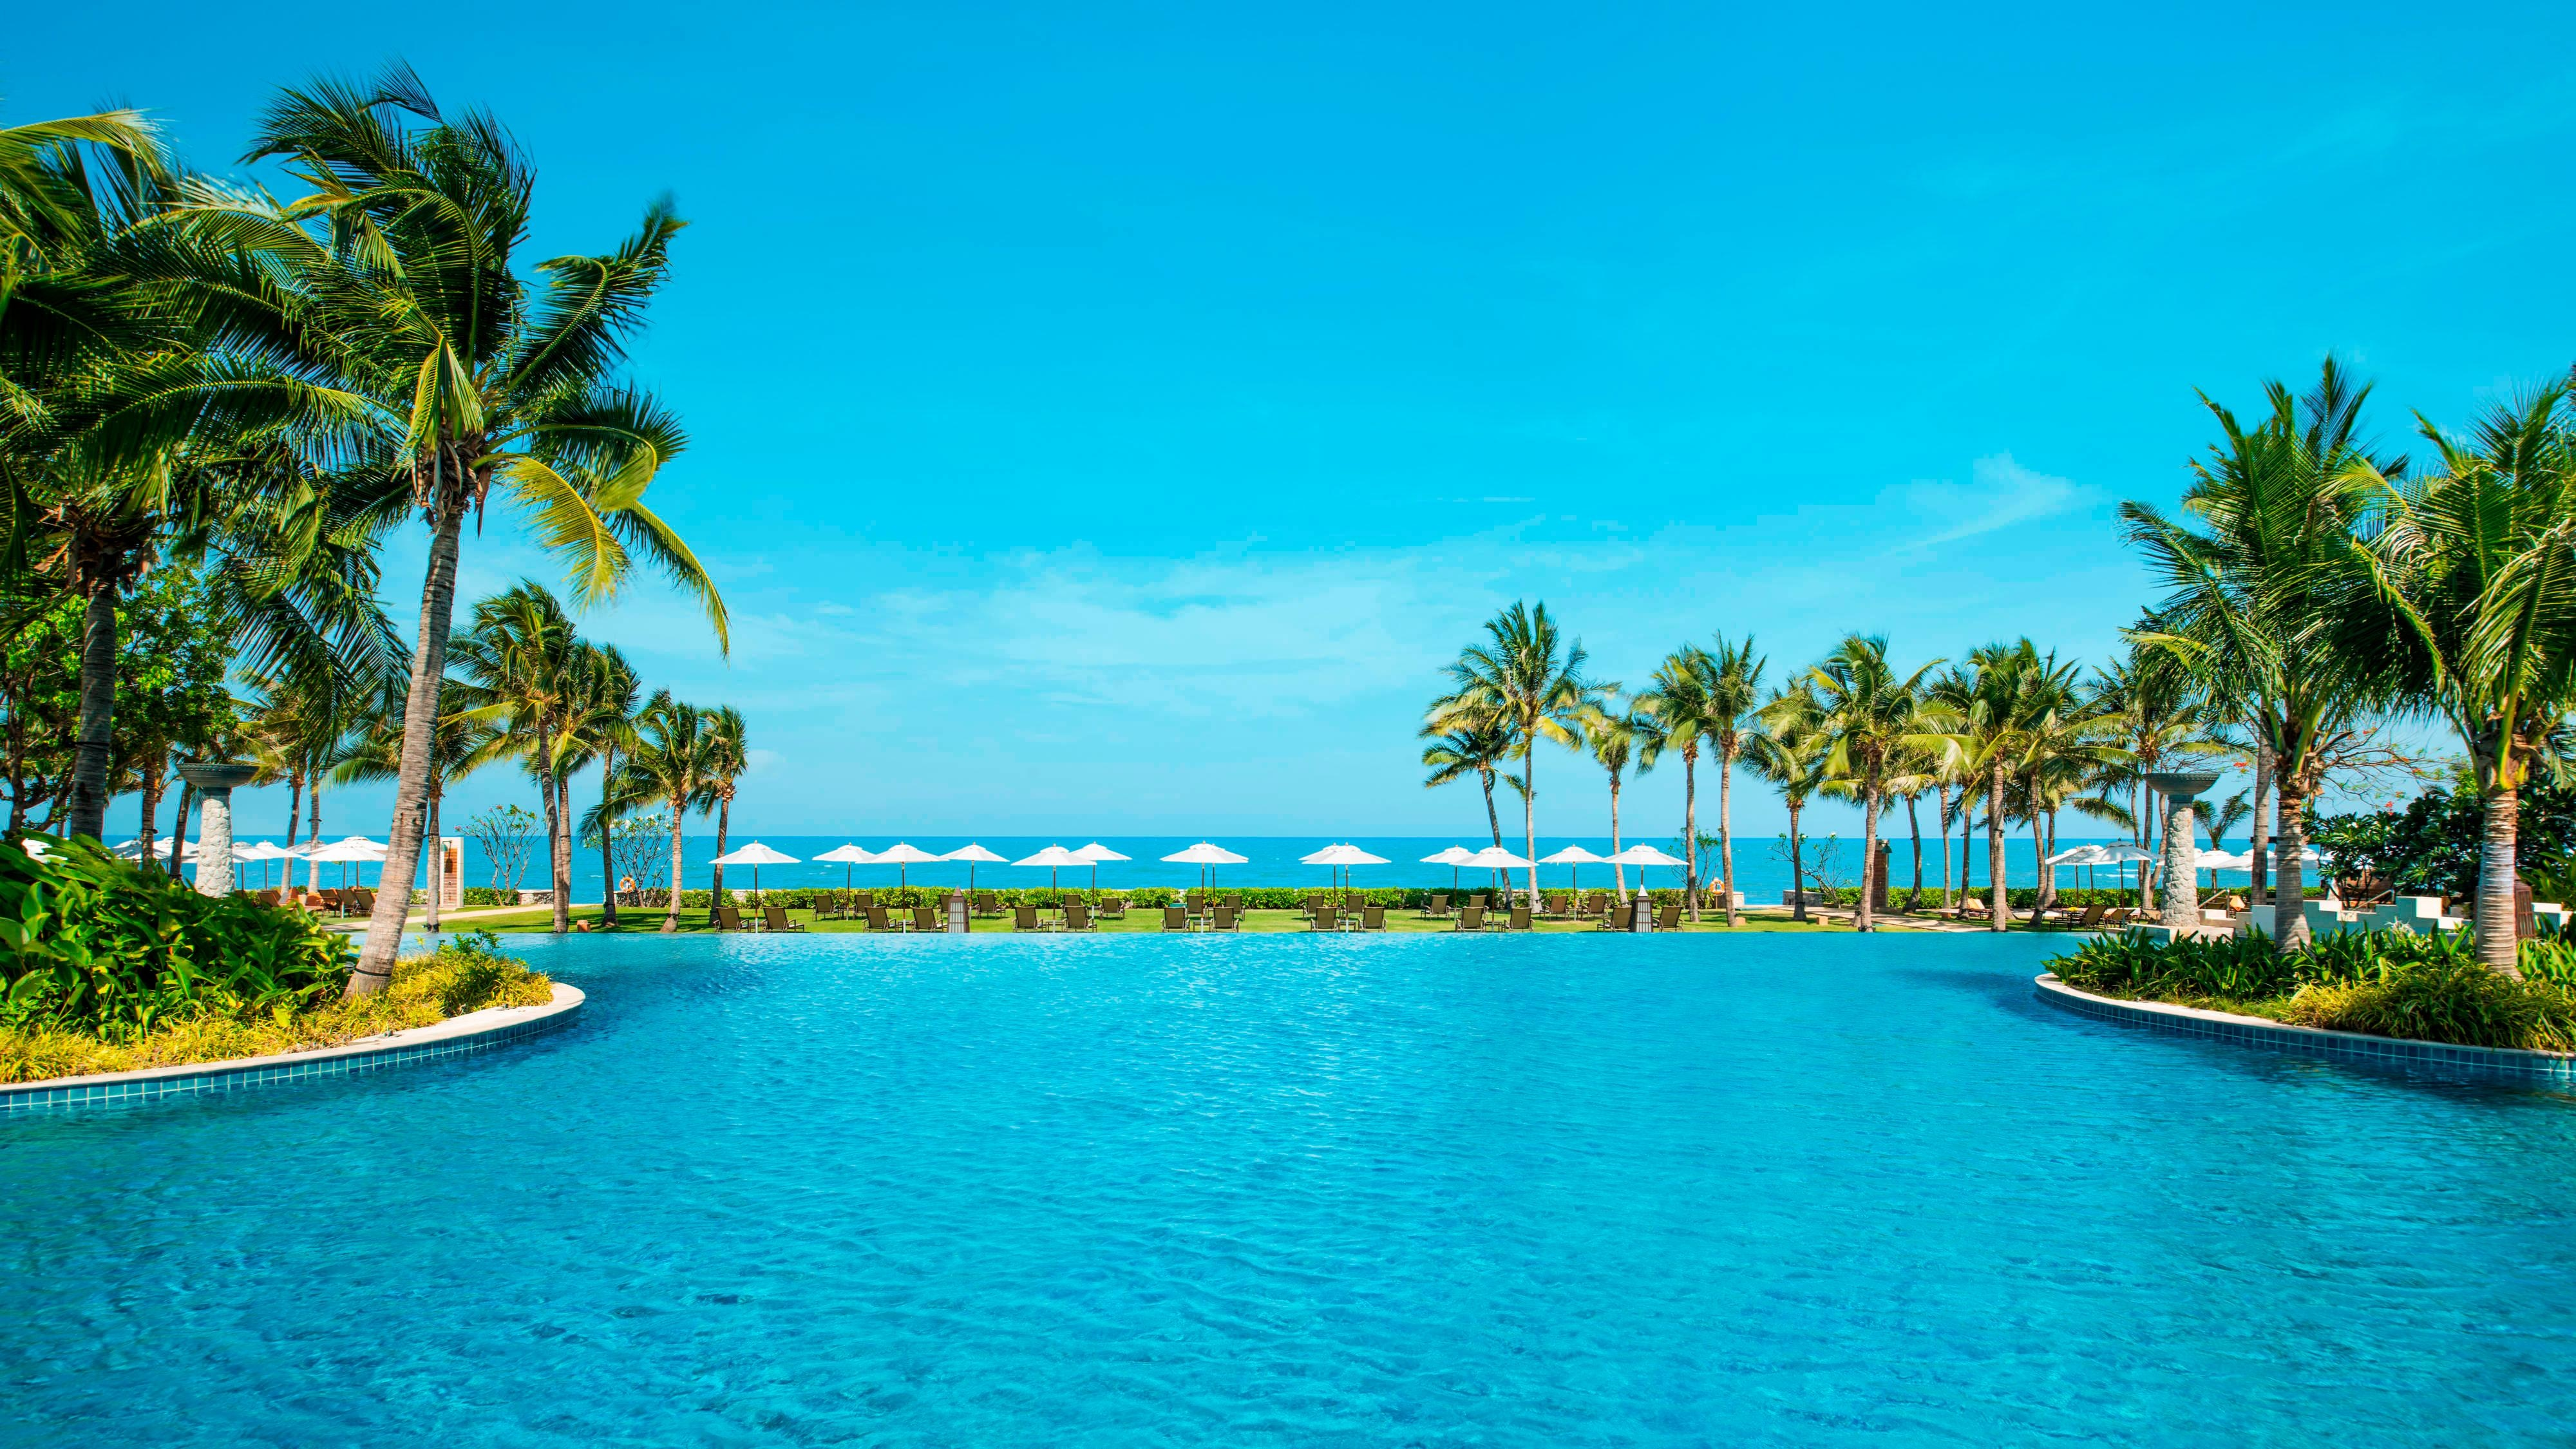 Infinity Pool Day View